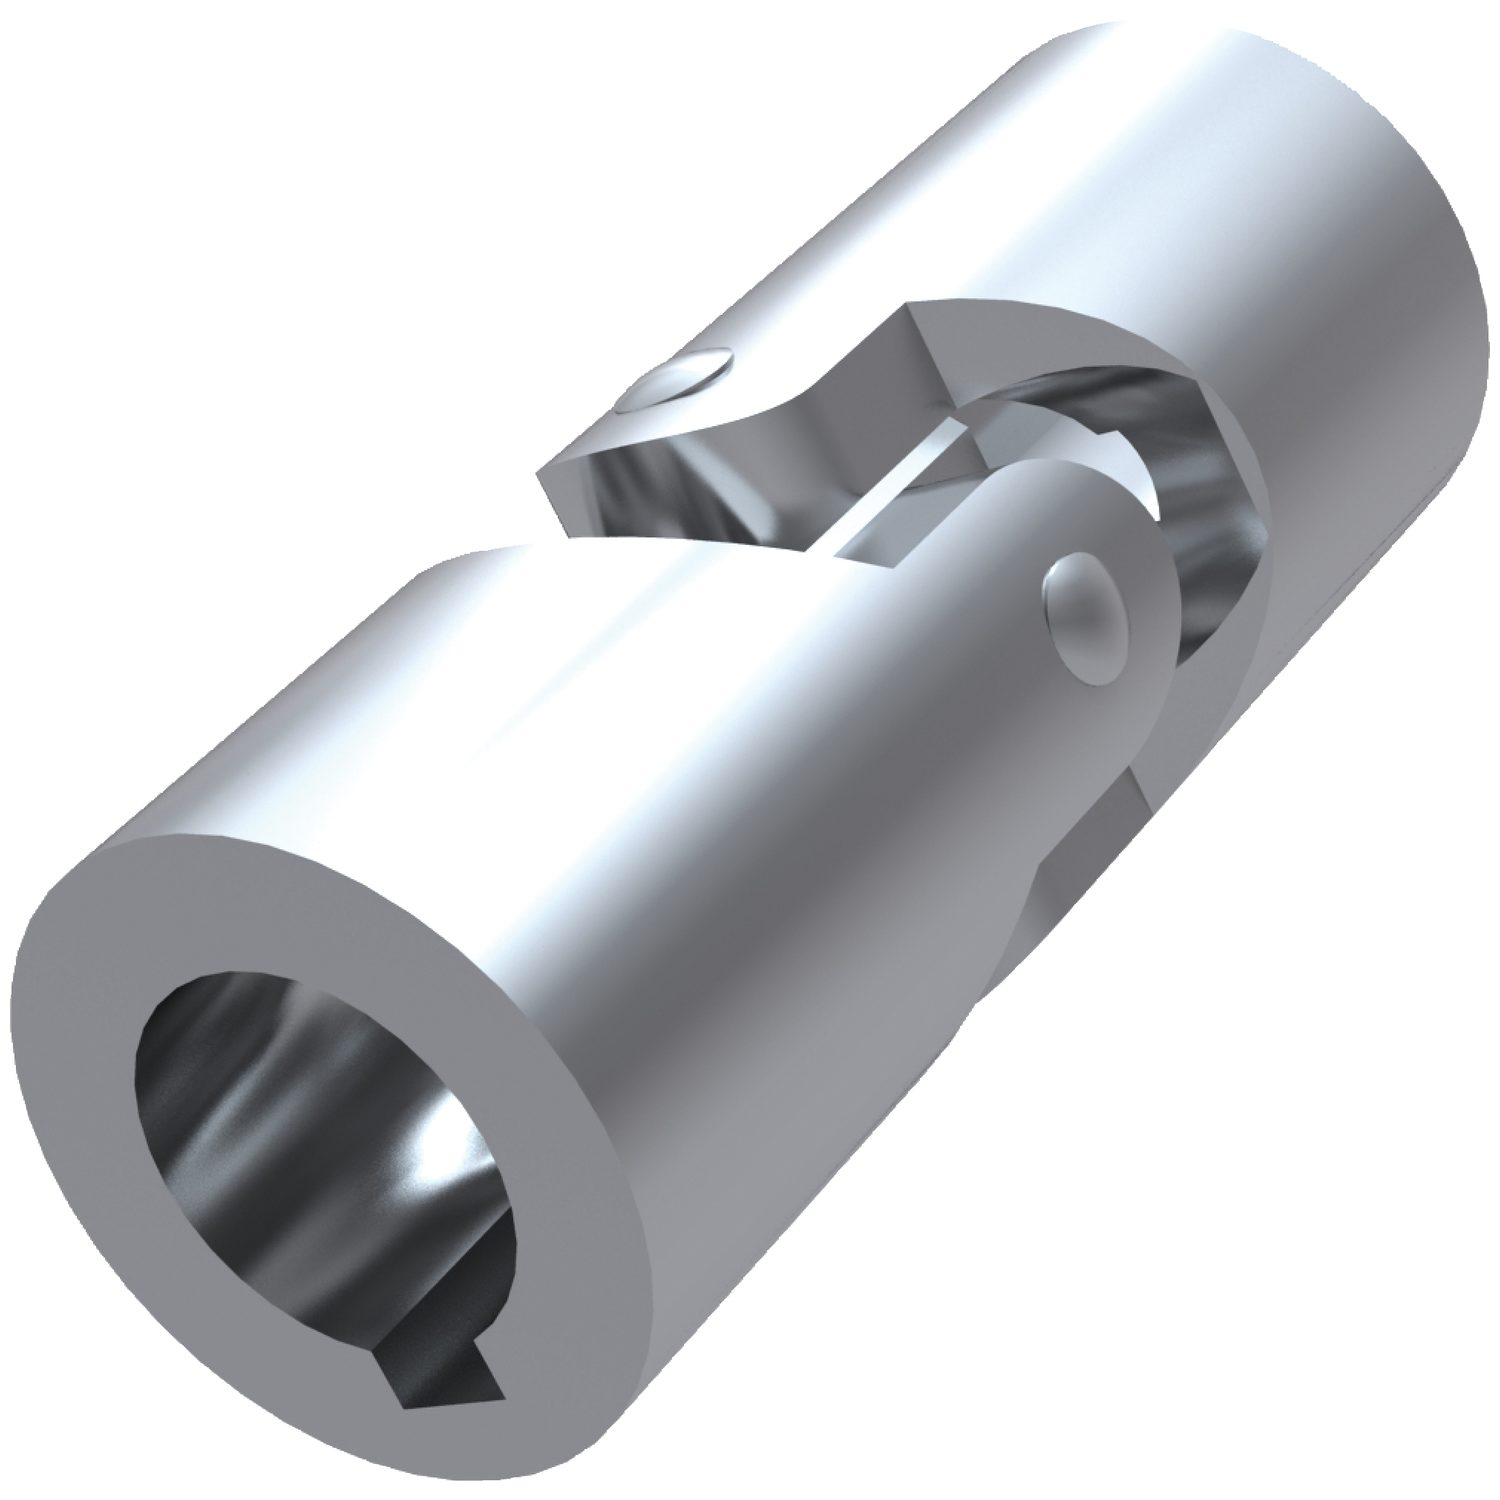 R3690 - Single Universal joint